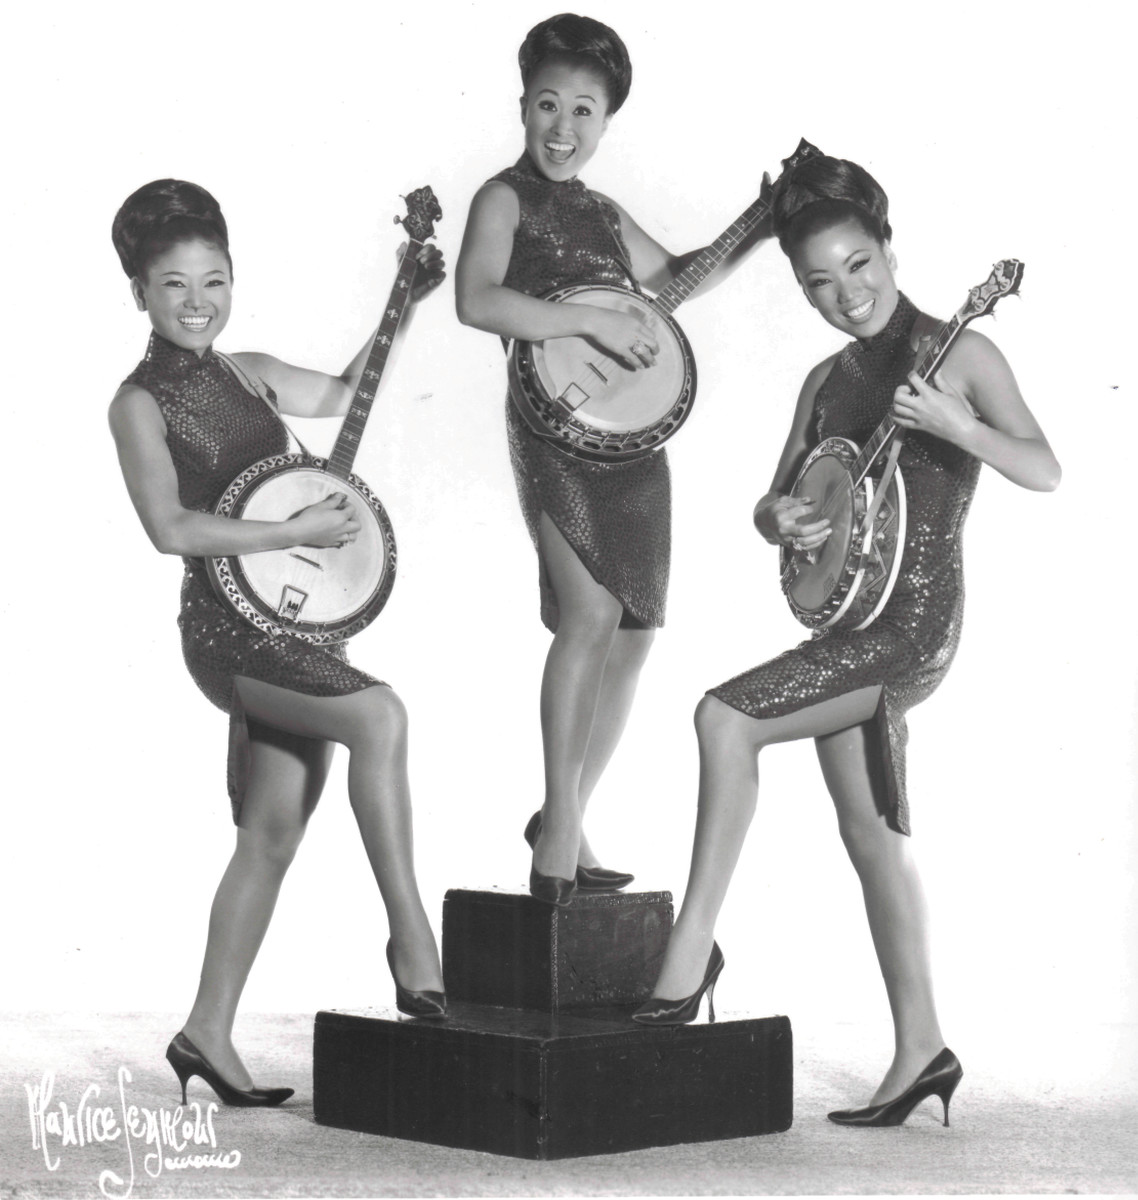 The Kim Sisters playing banjos in the 1960s. The Kim Sisters are considered to have laid roots as one of the first popular Korean crossover groups.